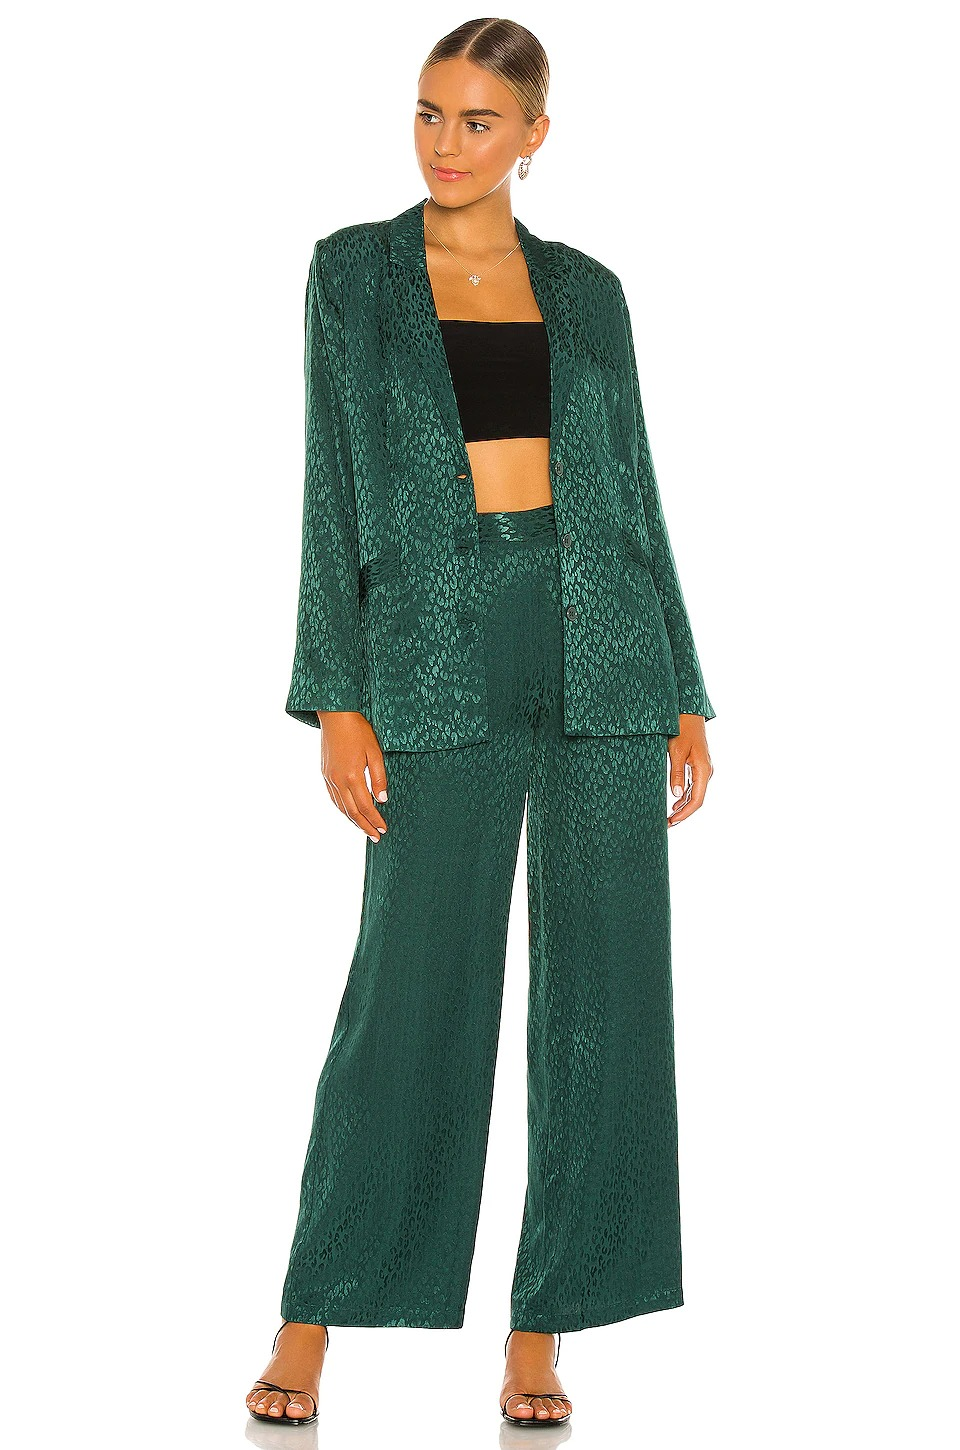 Green blazer and trouser suits for female wedding guests